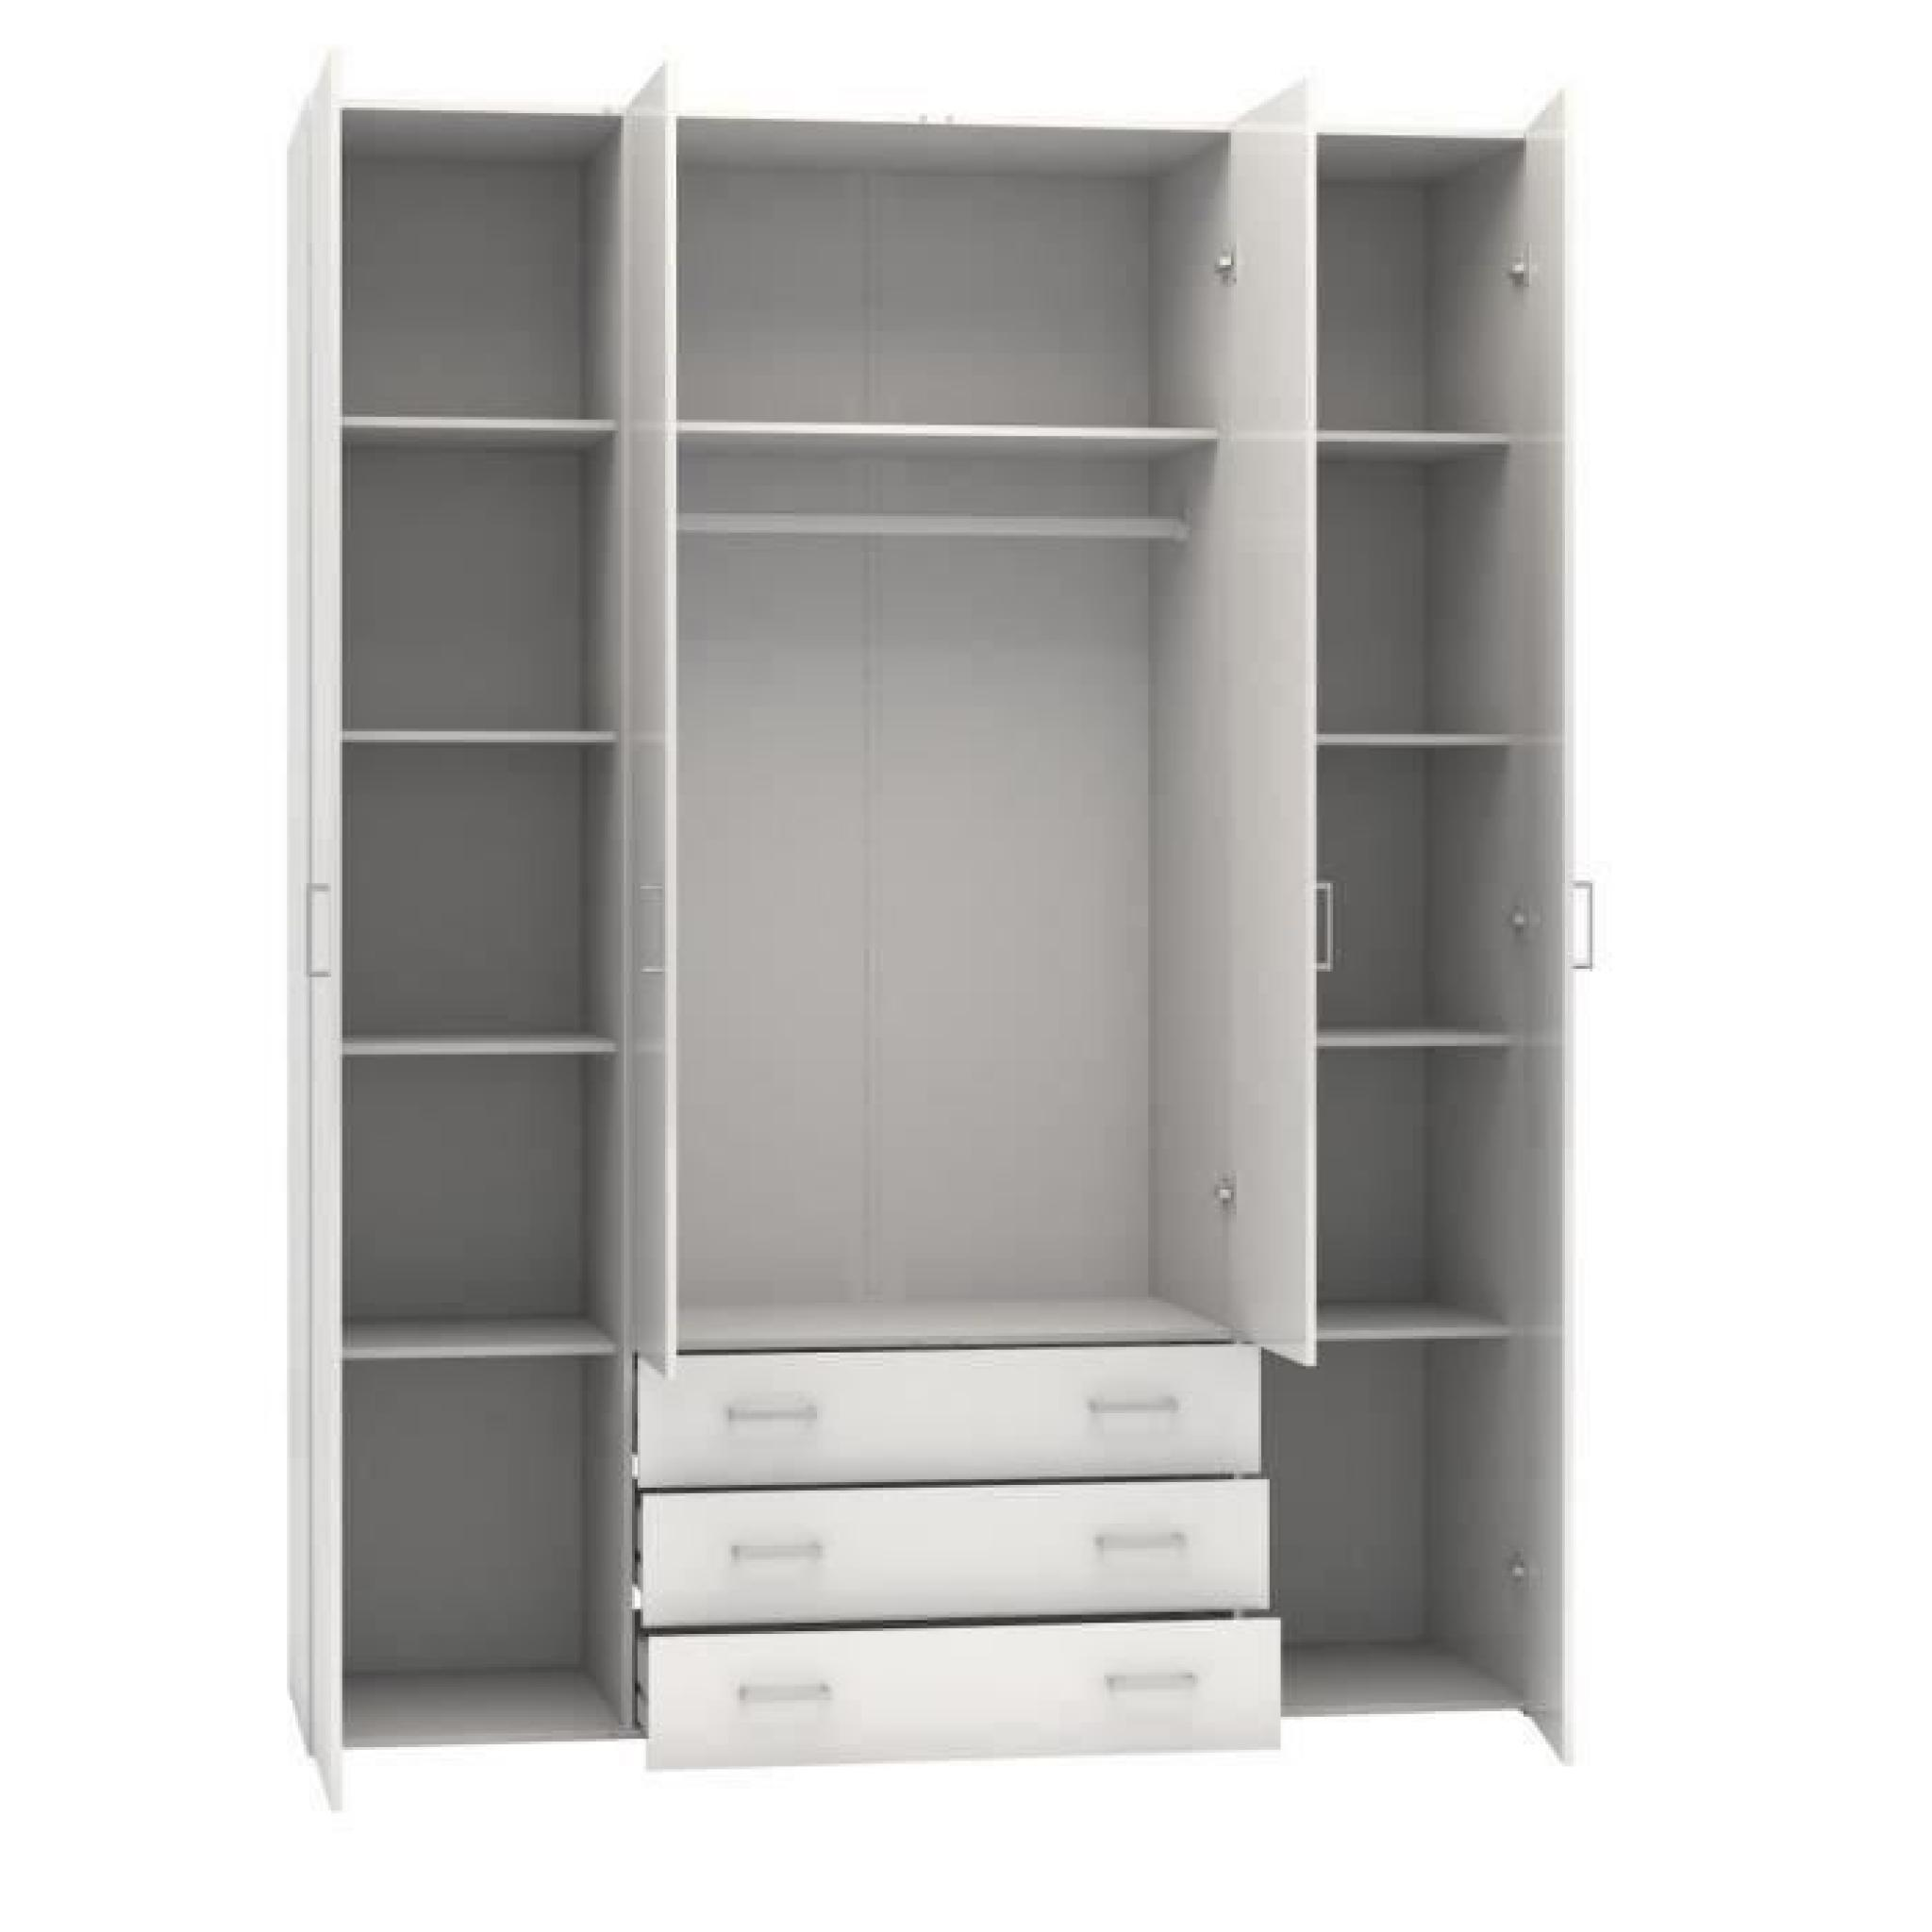 space armoire 154x49x200 cm blanc brillant achat vente. Black Bedroom Furniture Sets. Home Design Ideas